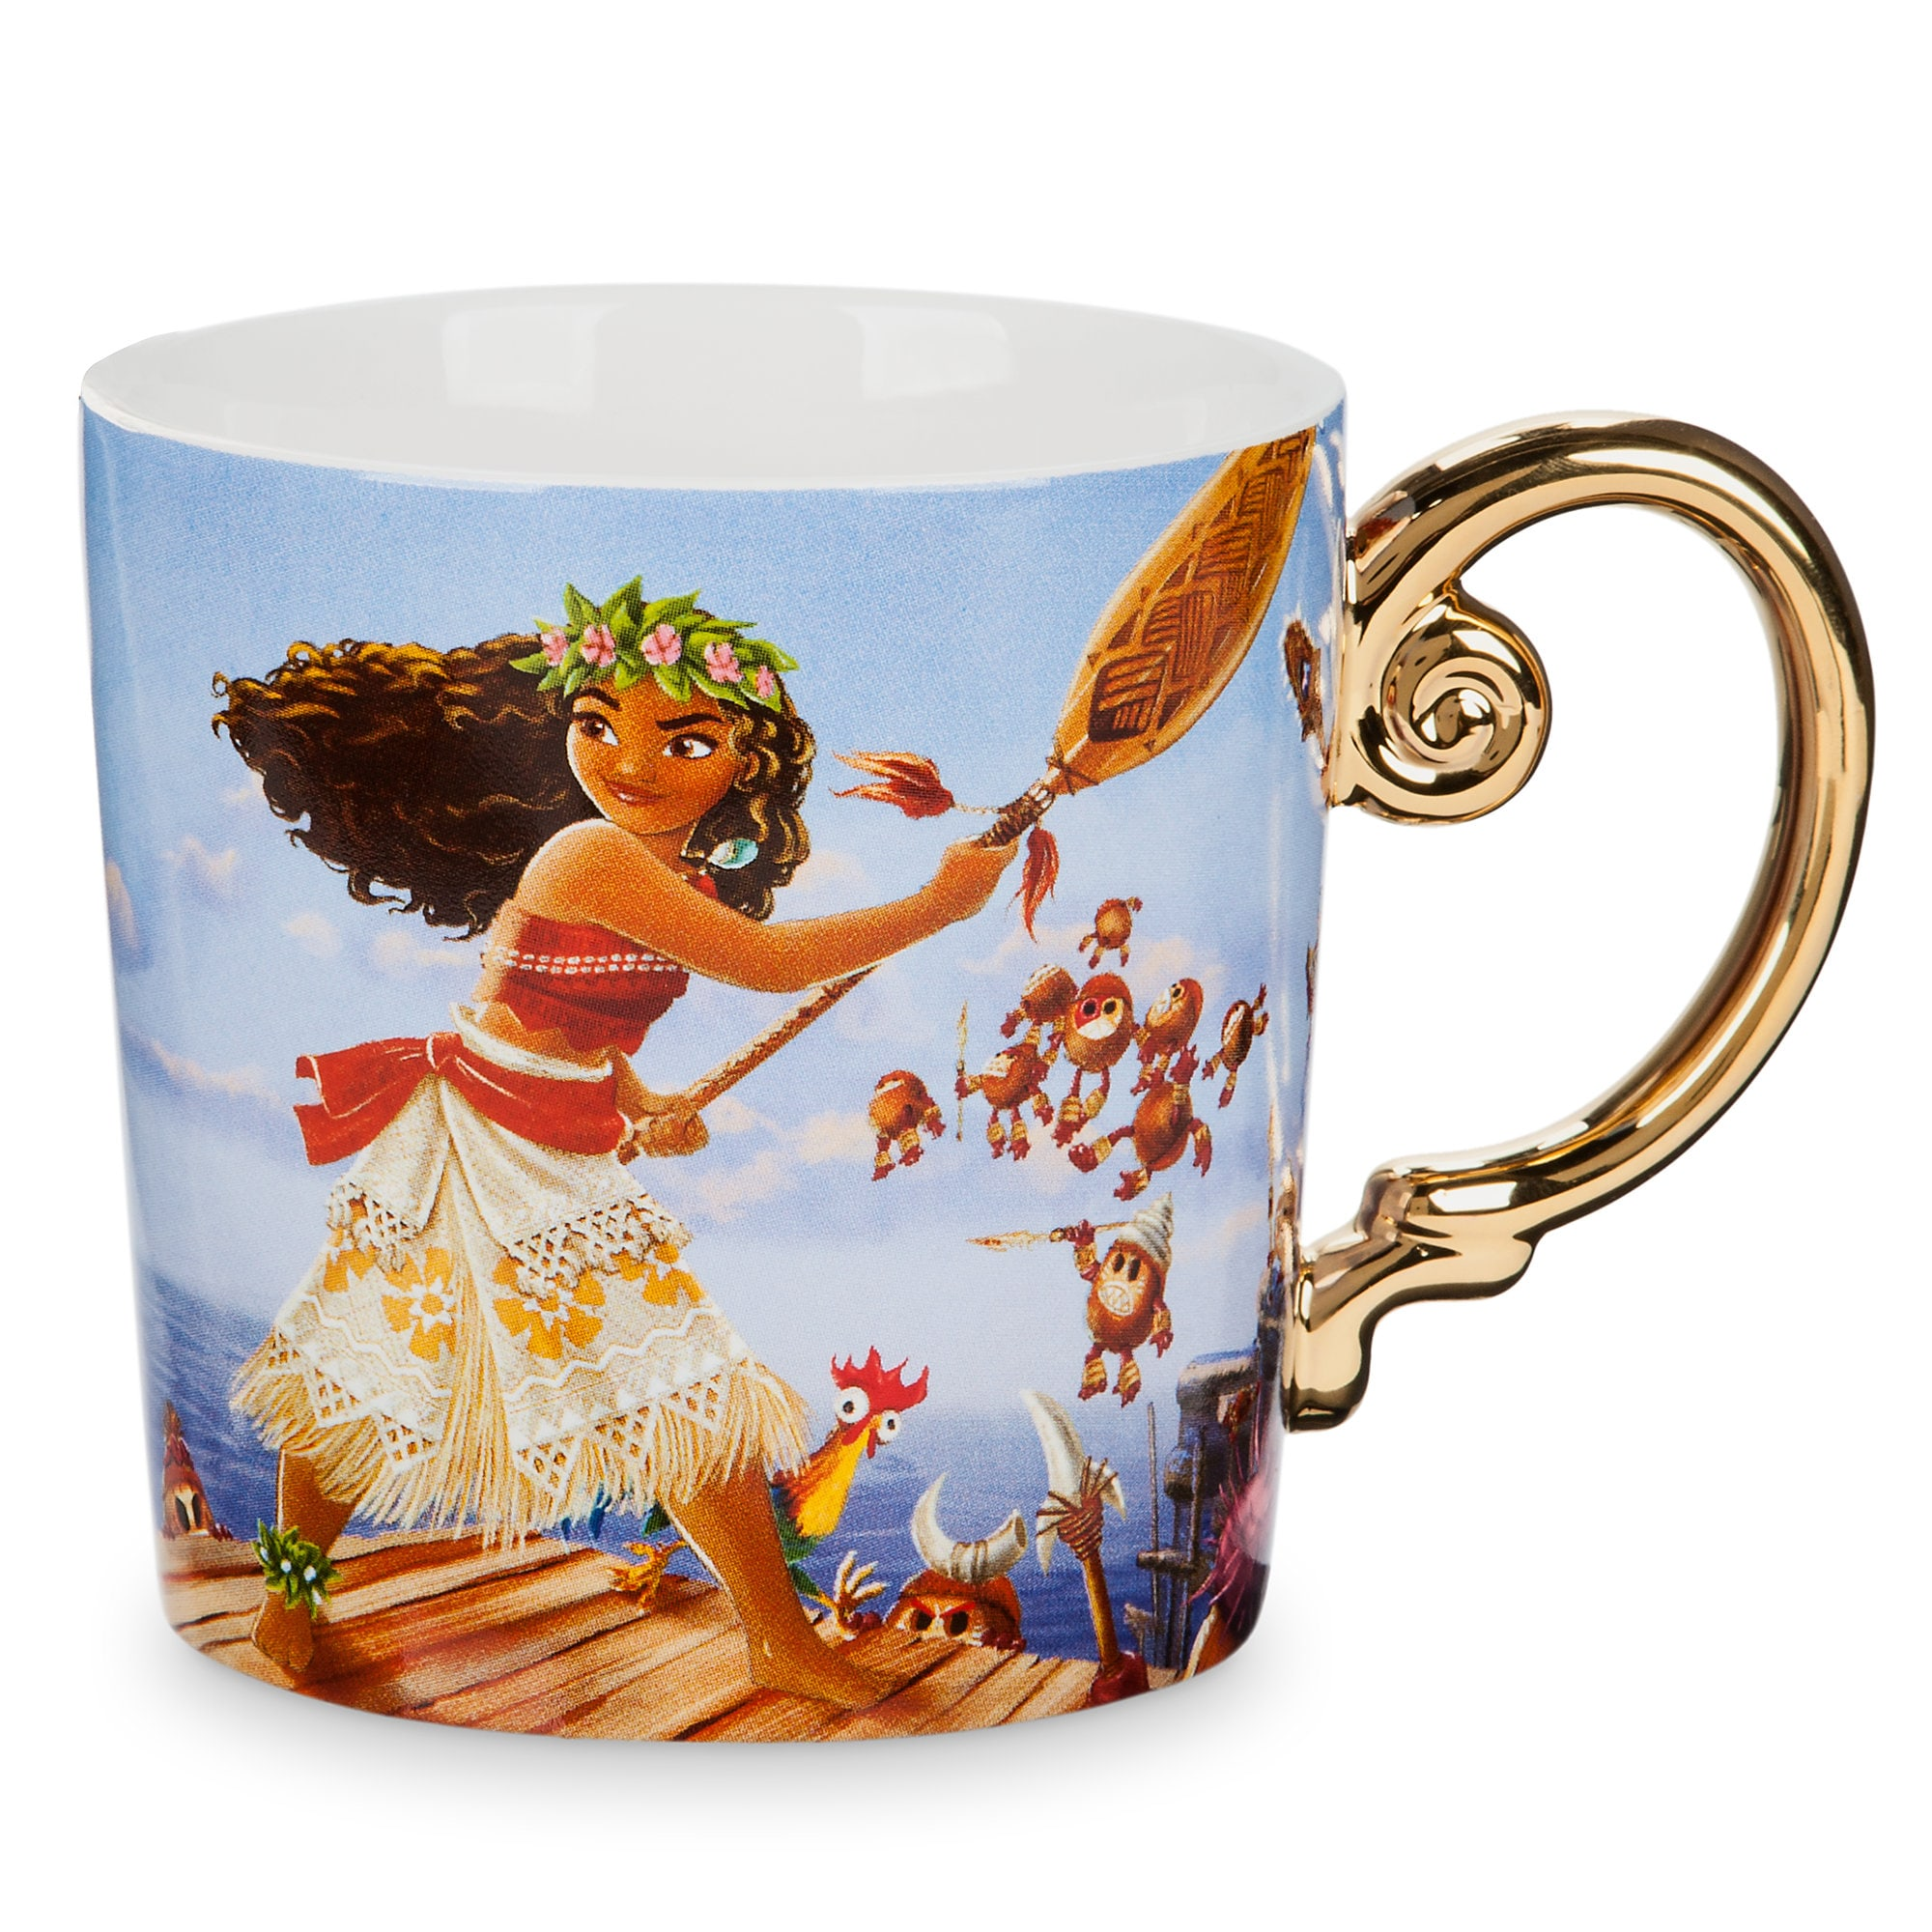 Moana Coffee Mug